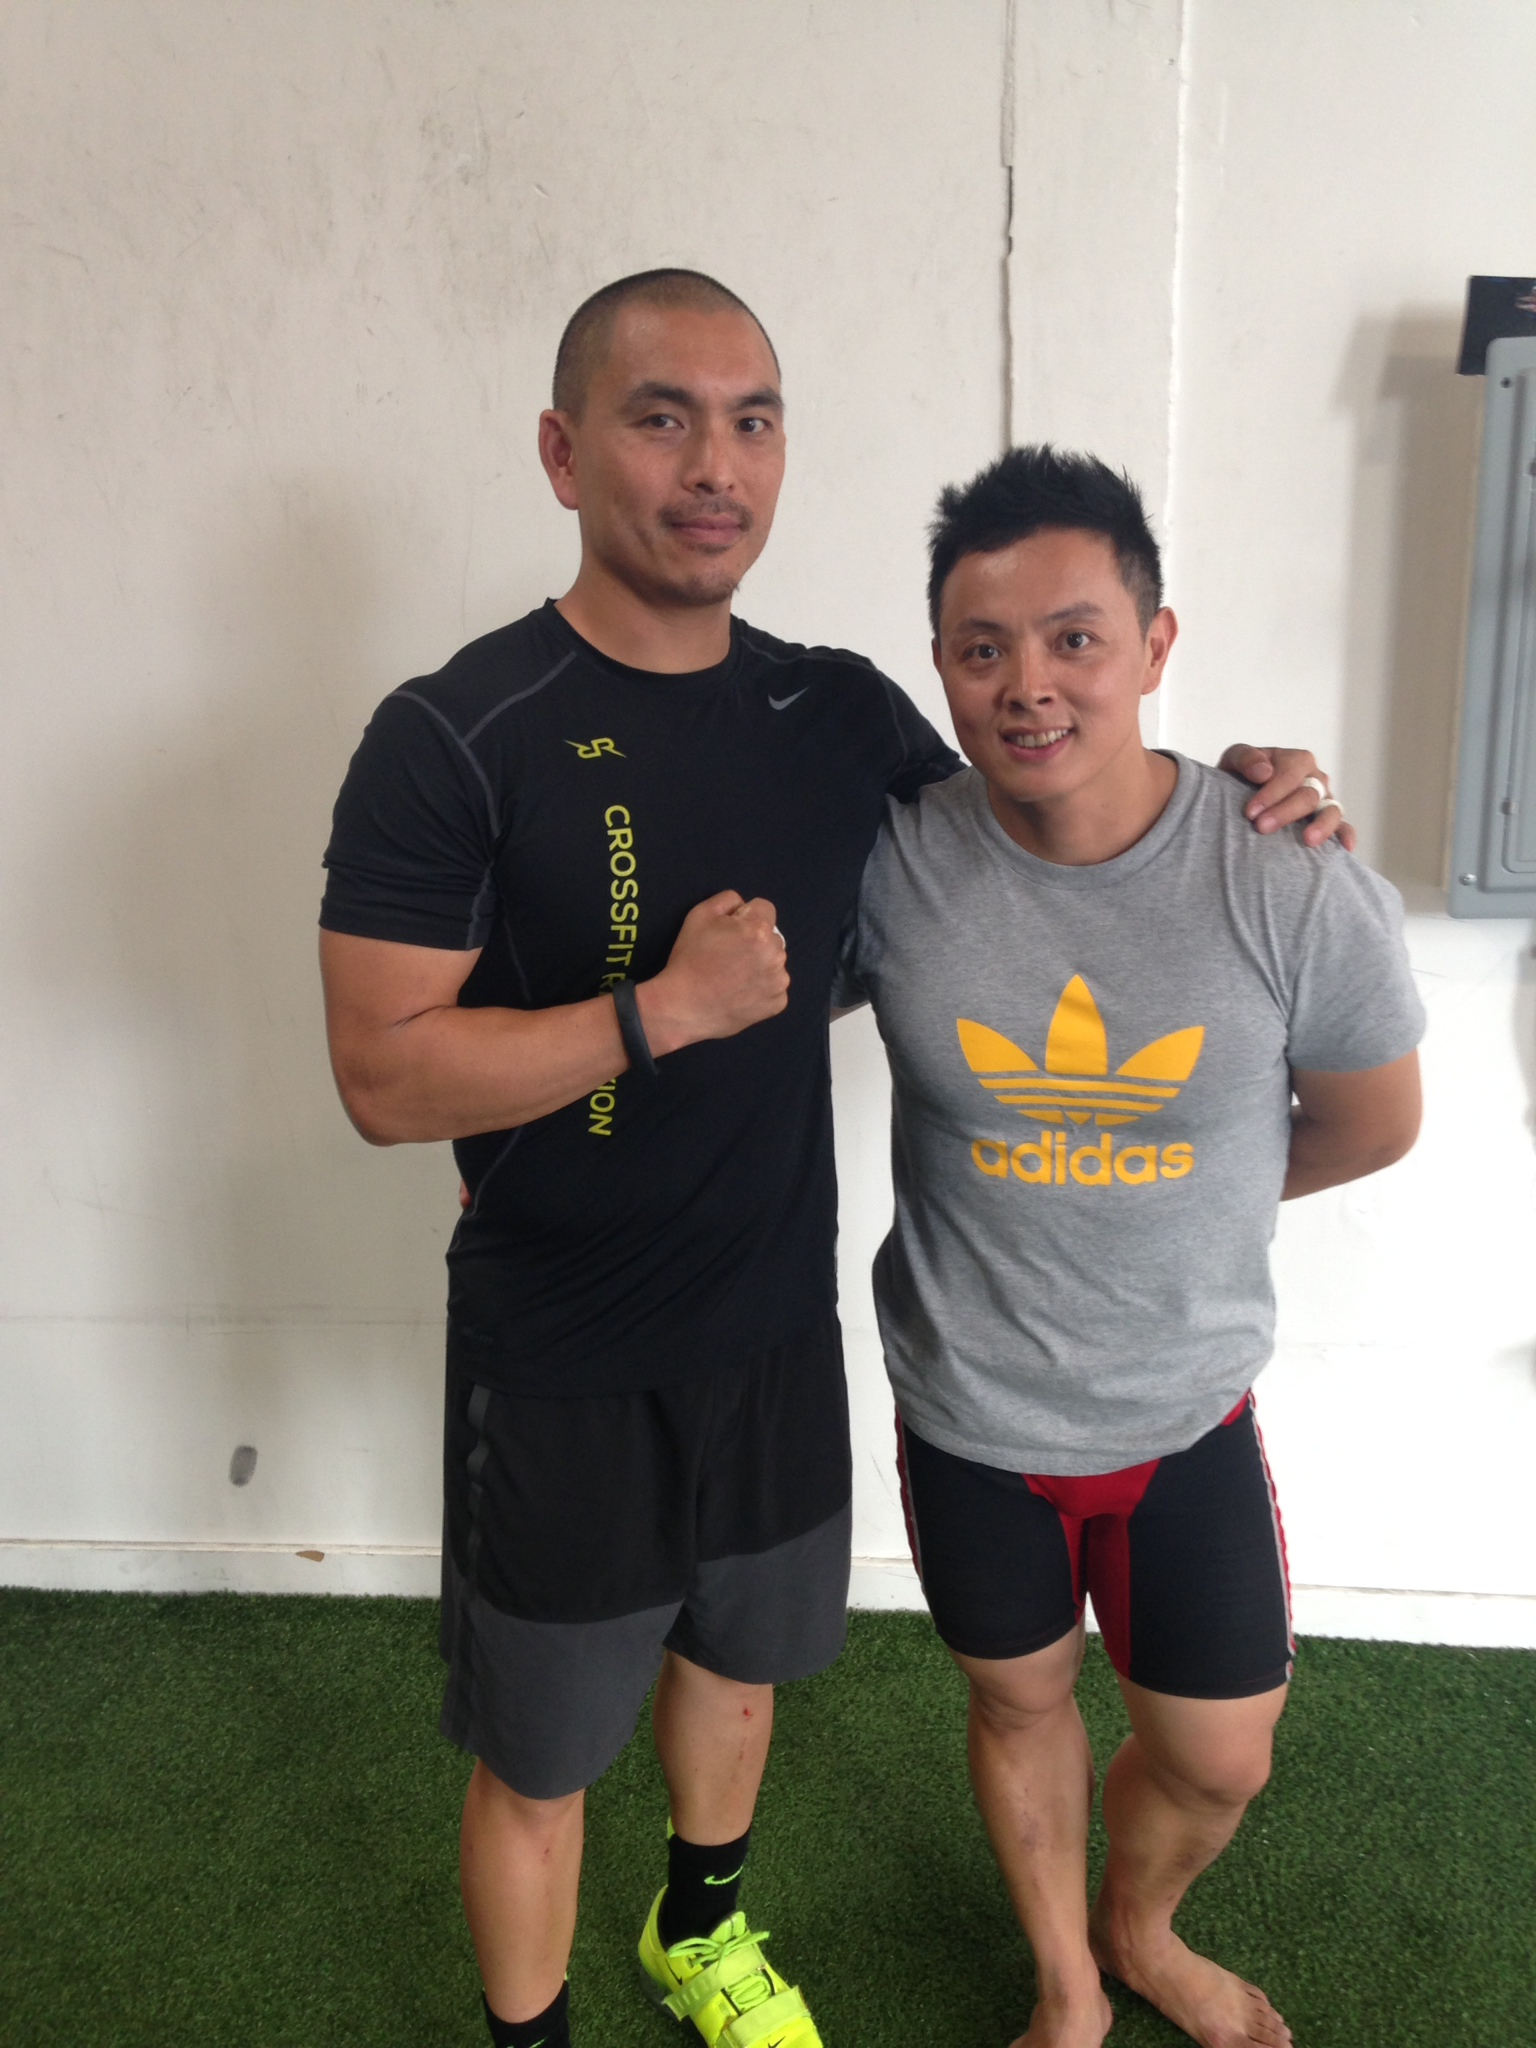 Jesse's coaching is always improving and evolving. Here he is with lifting great Coach Wu.